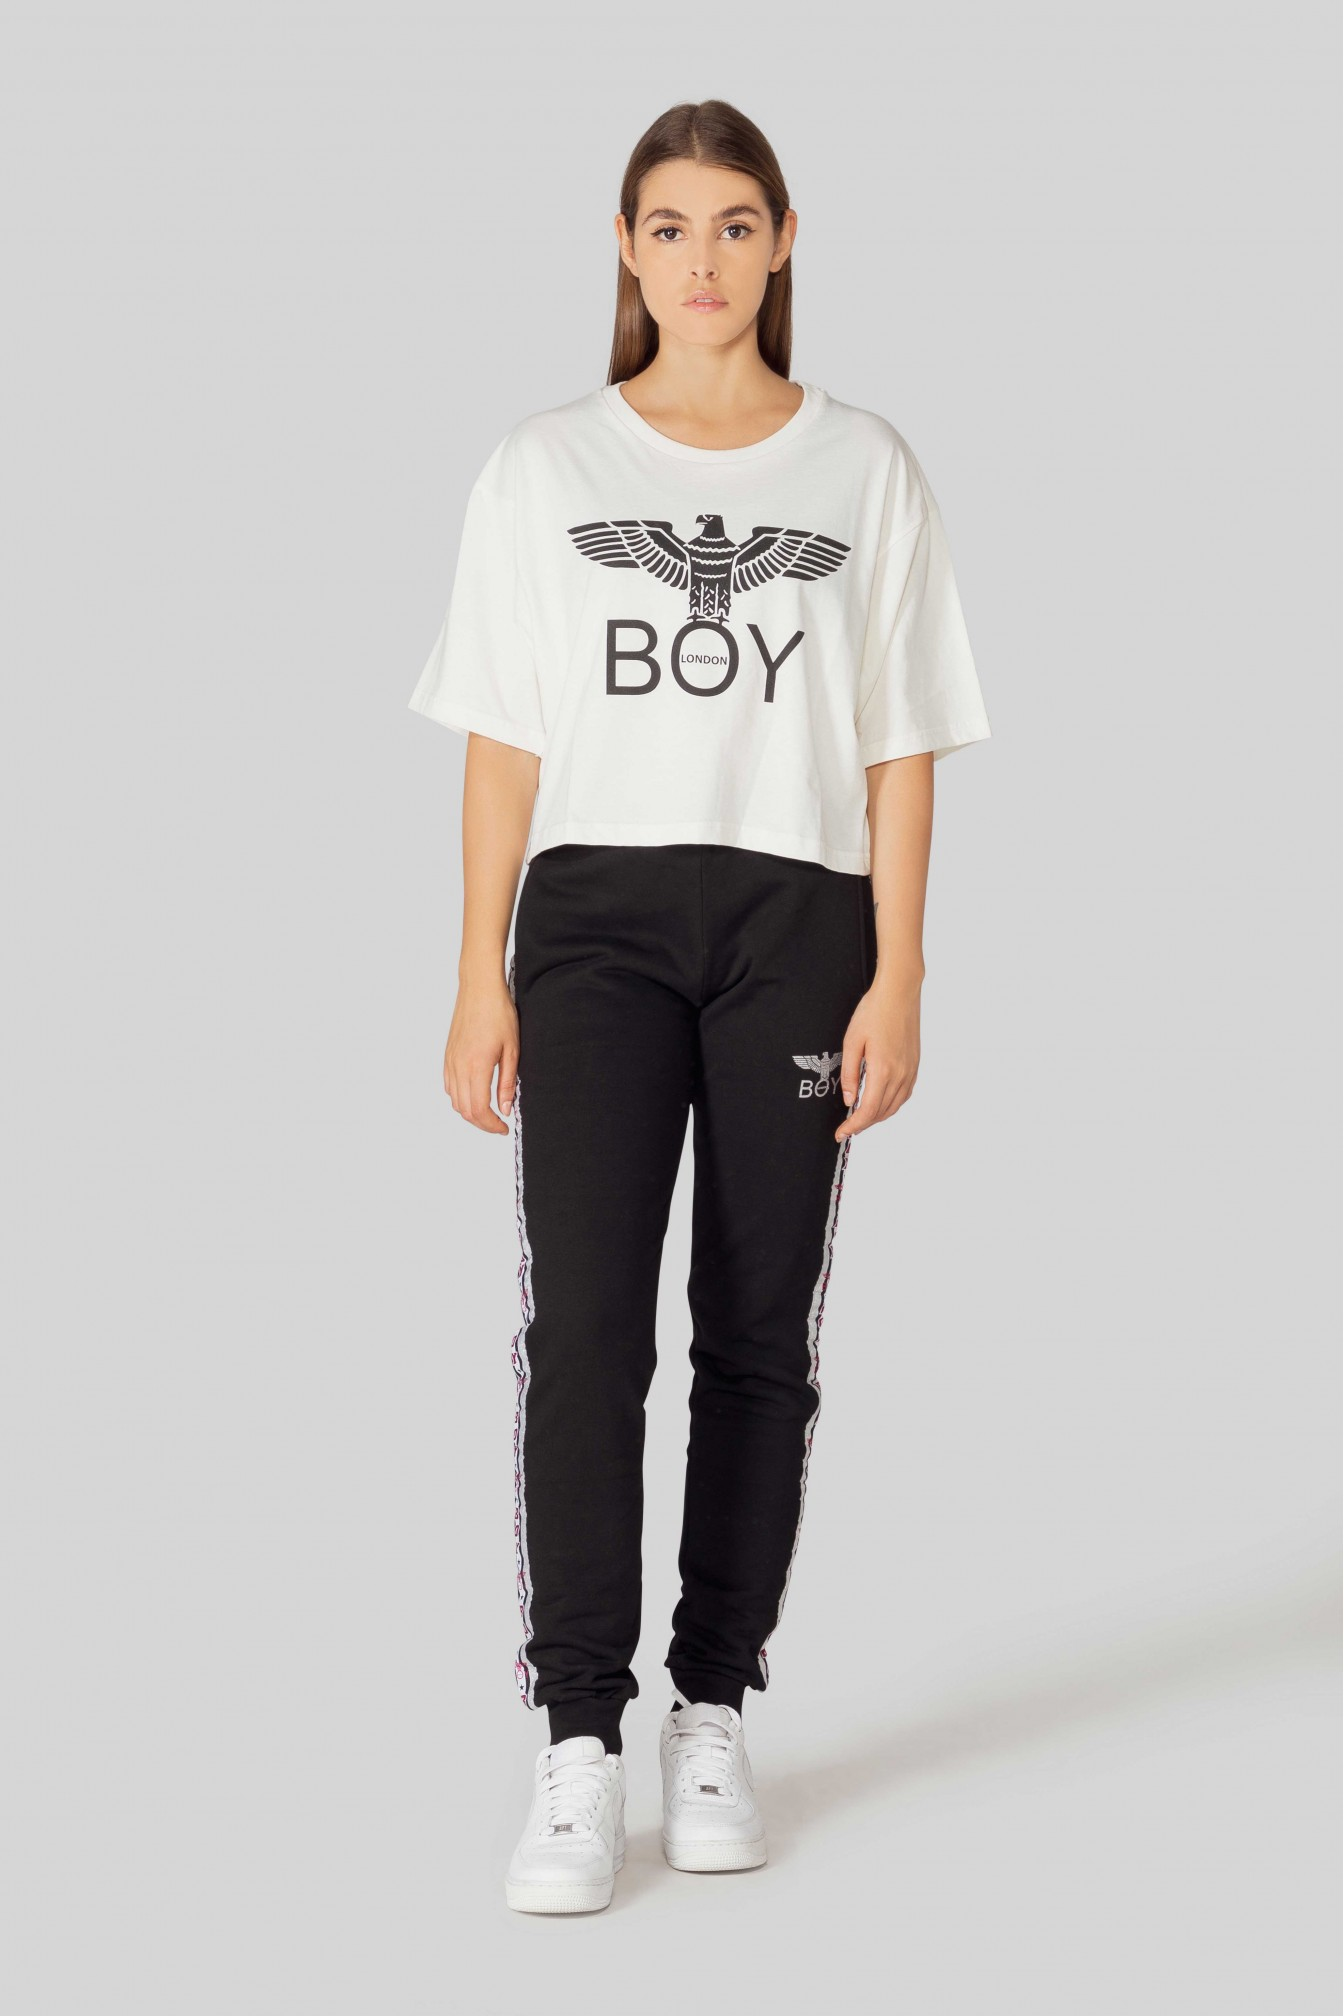 T-SHIRT - BLD2613 - BOY LONDON